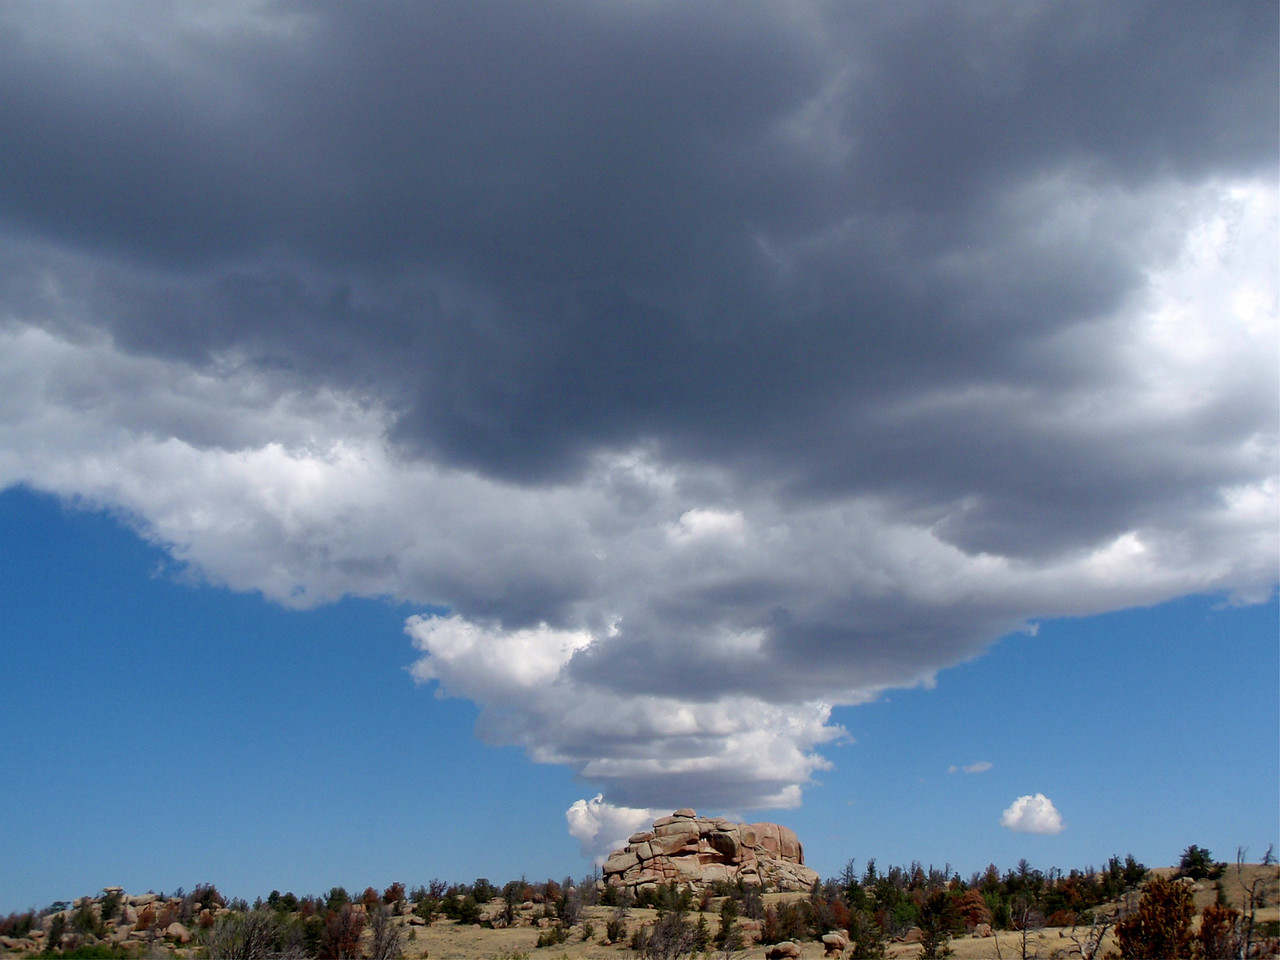 Went to one of my favorite places on earth with Matt & Sarah for Labor Day '09 ...Vedauwoo!